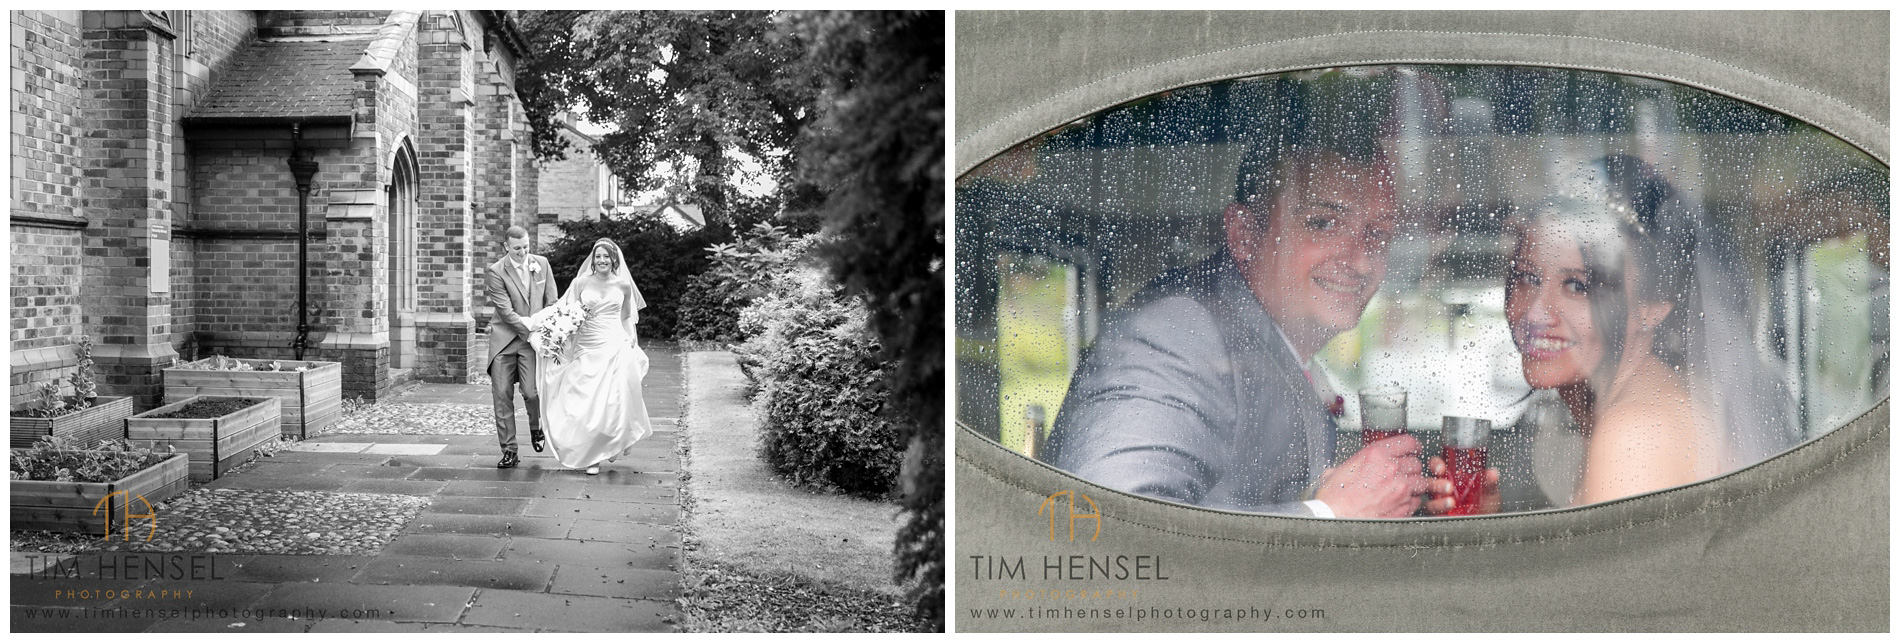 Natural, creative wedding photography in Stockport